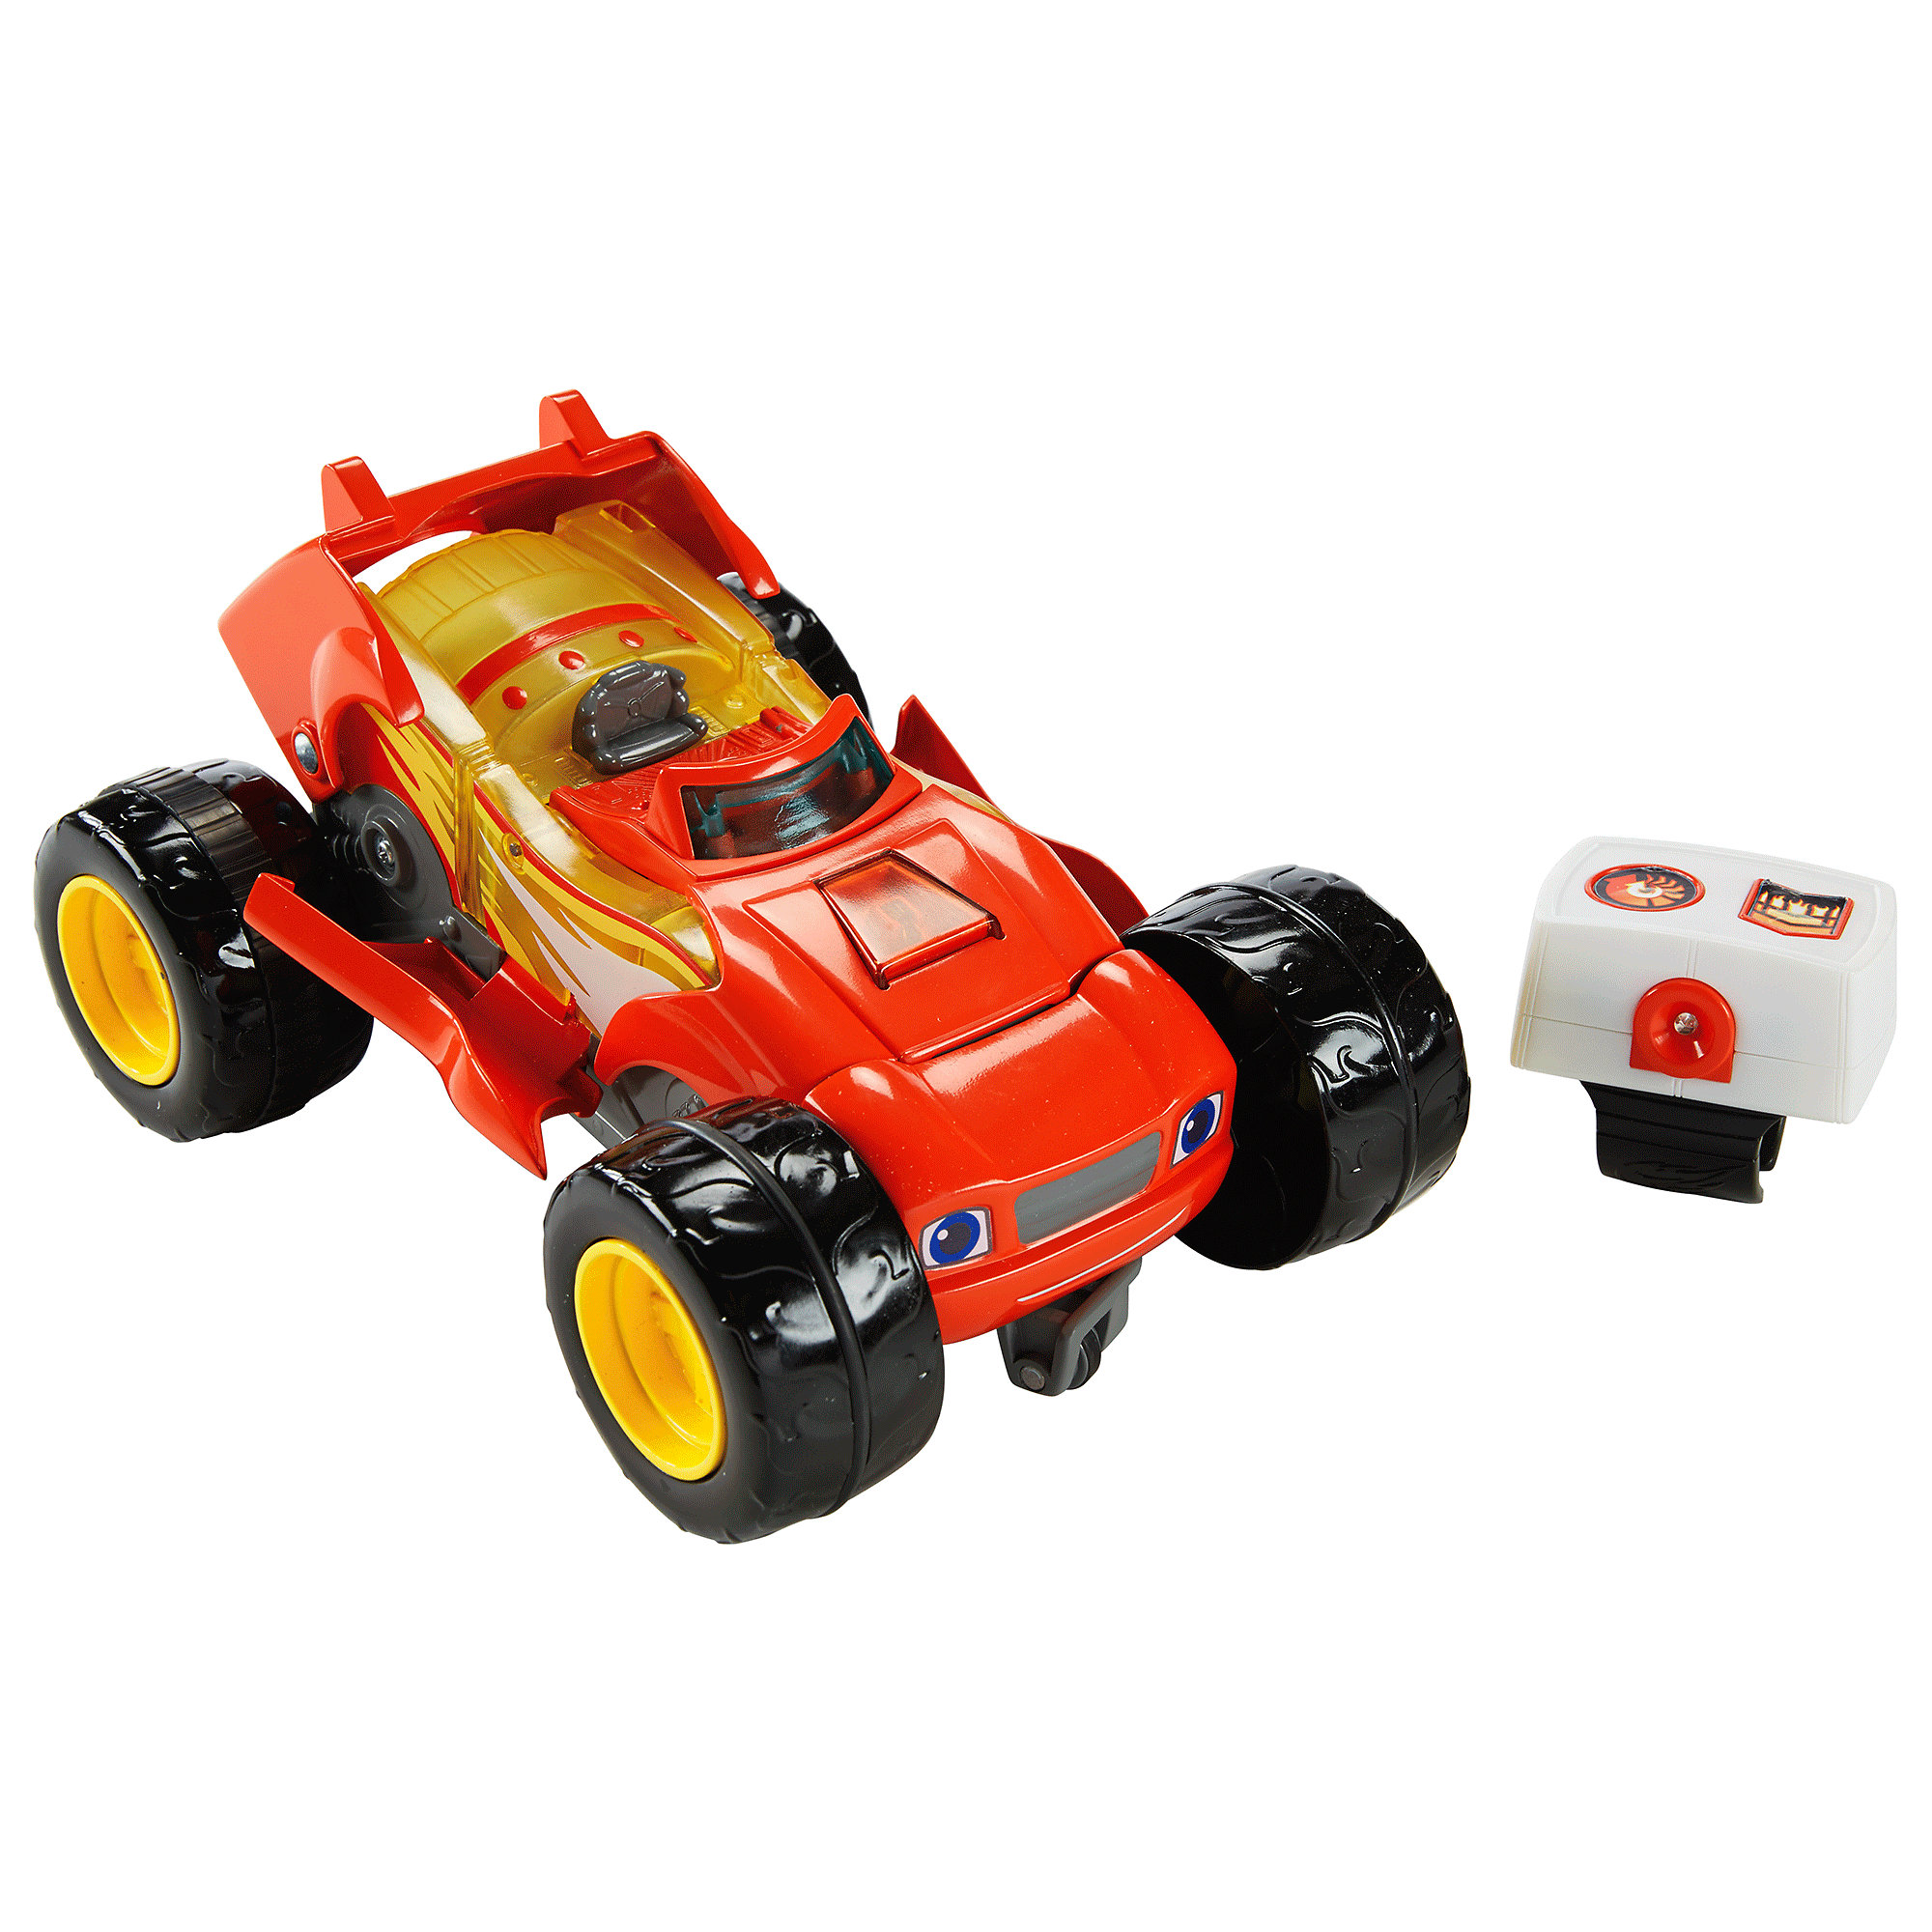 Fisher-Price Nickelodeon Blaze and the Monster Machines Transforming RC Blaze